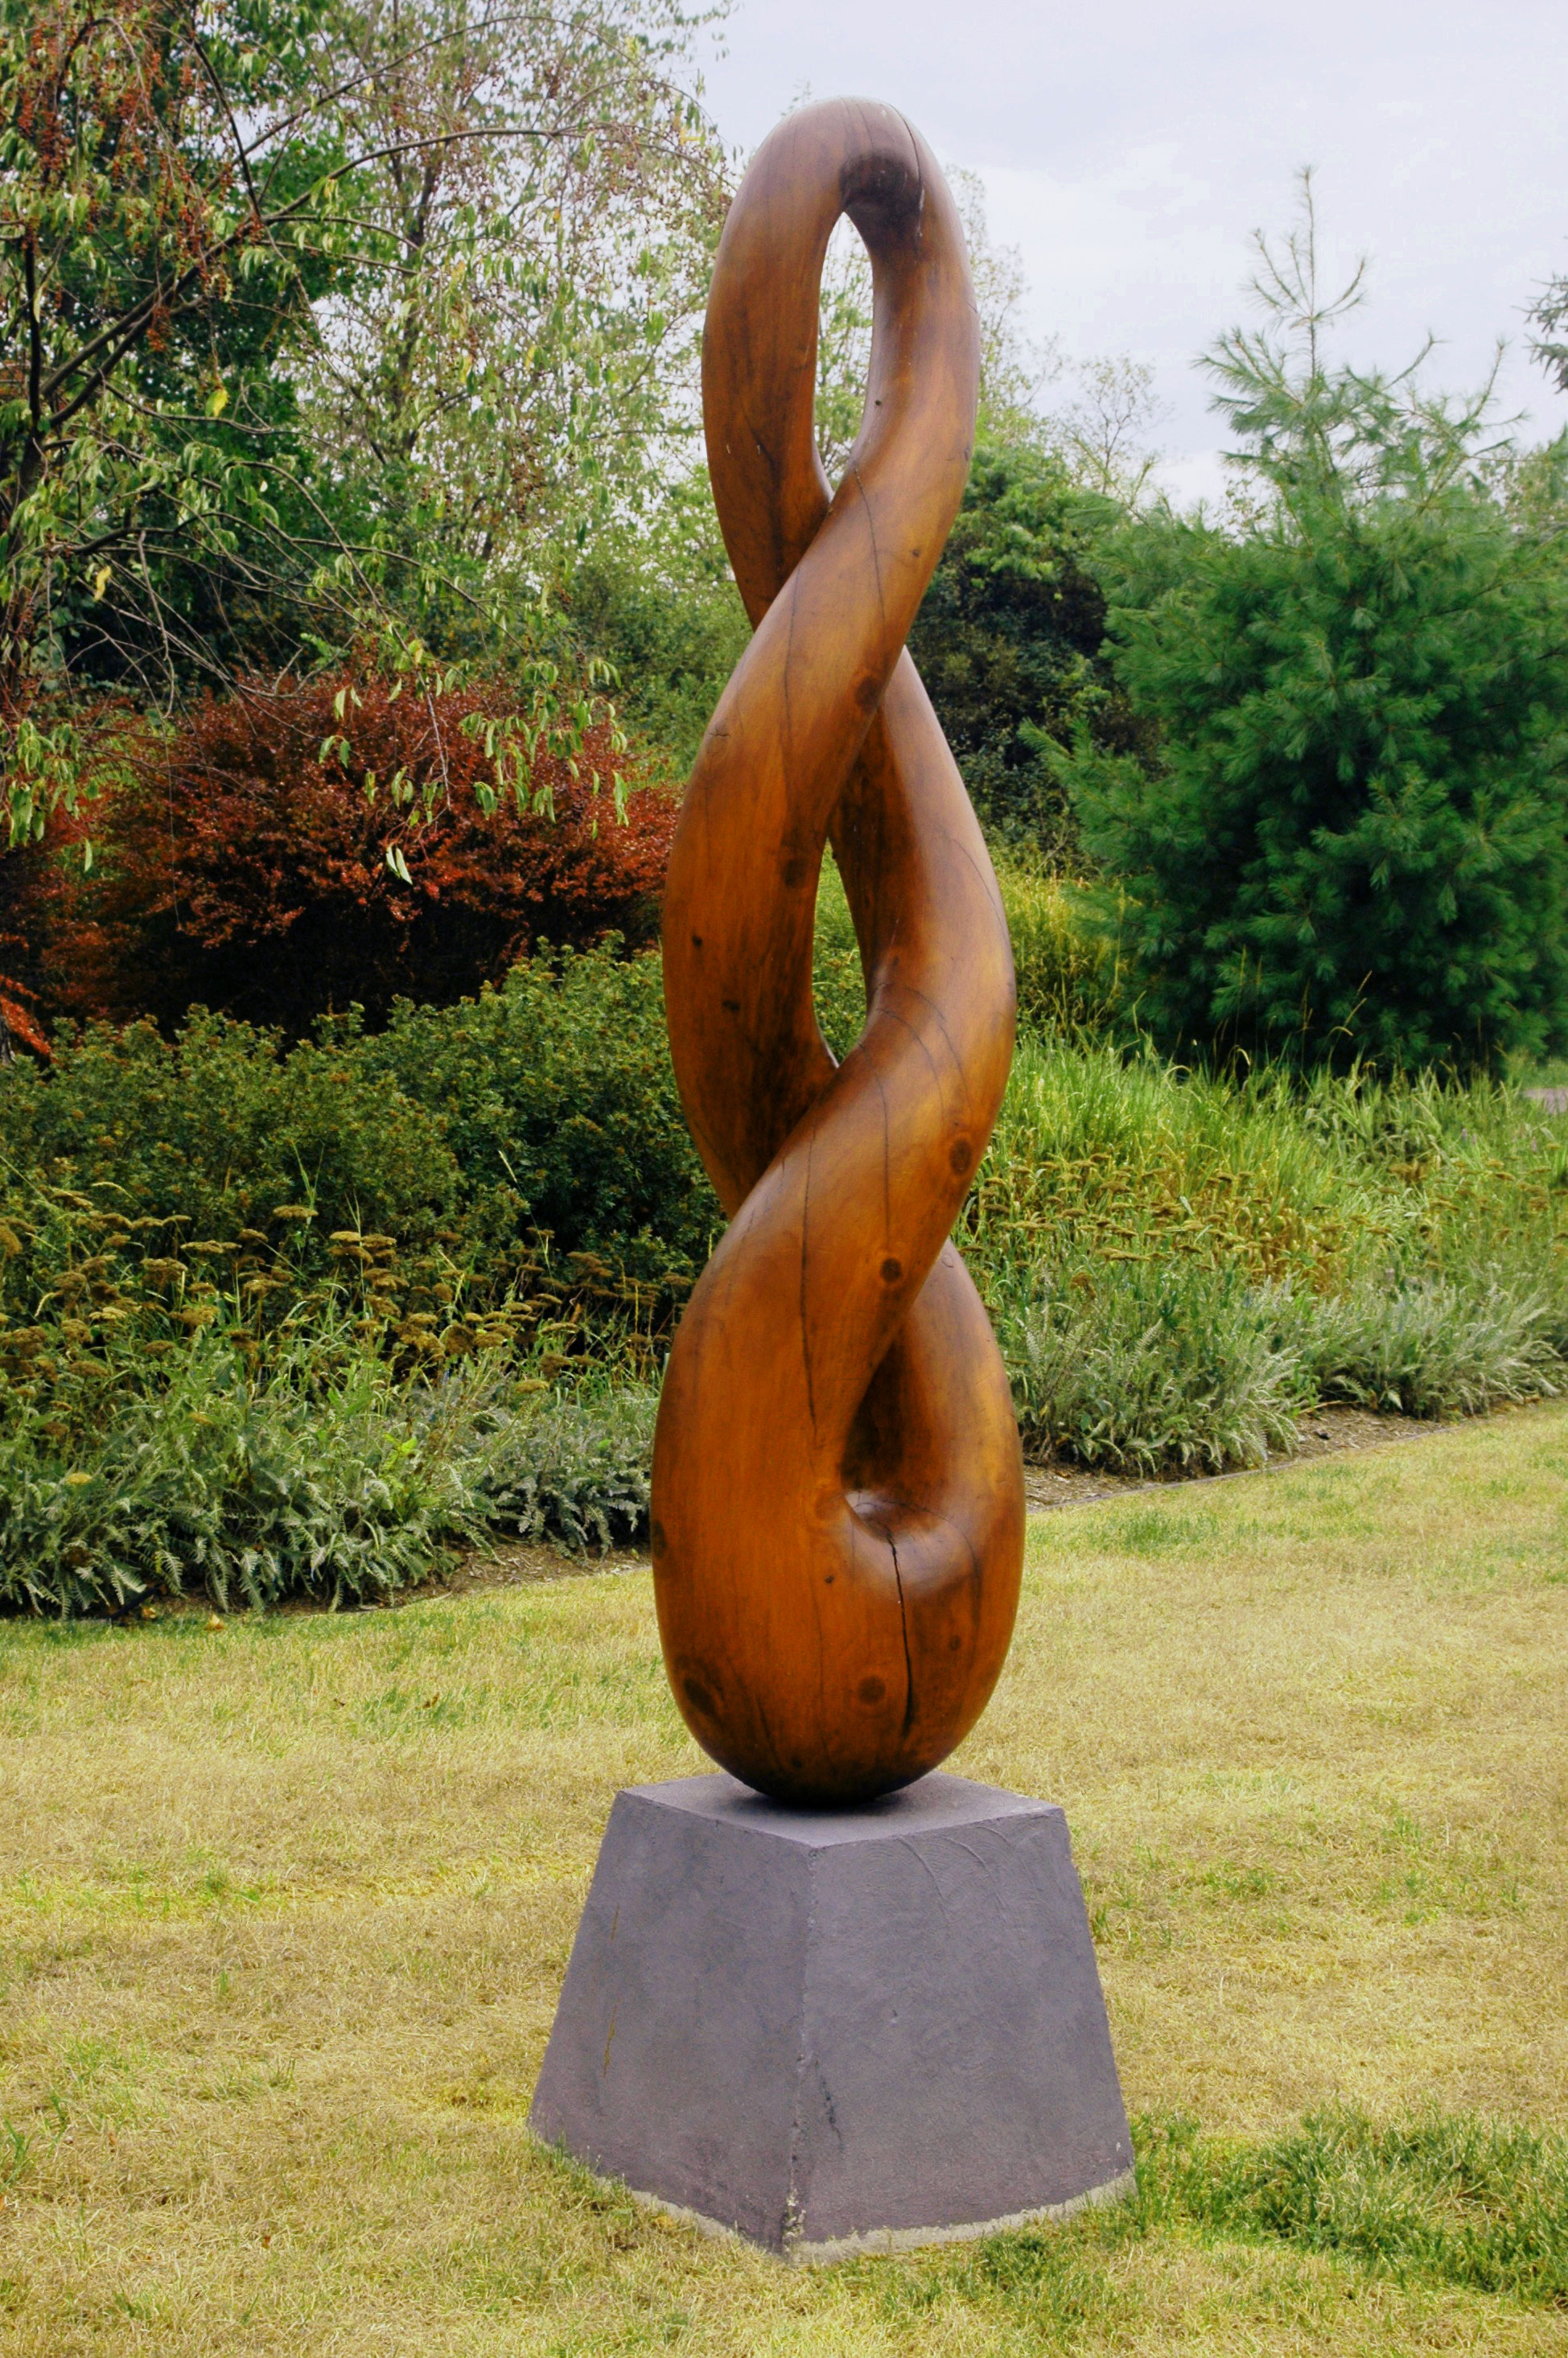 Pretzel outdoor sculpture